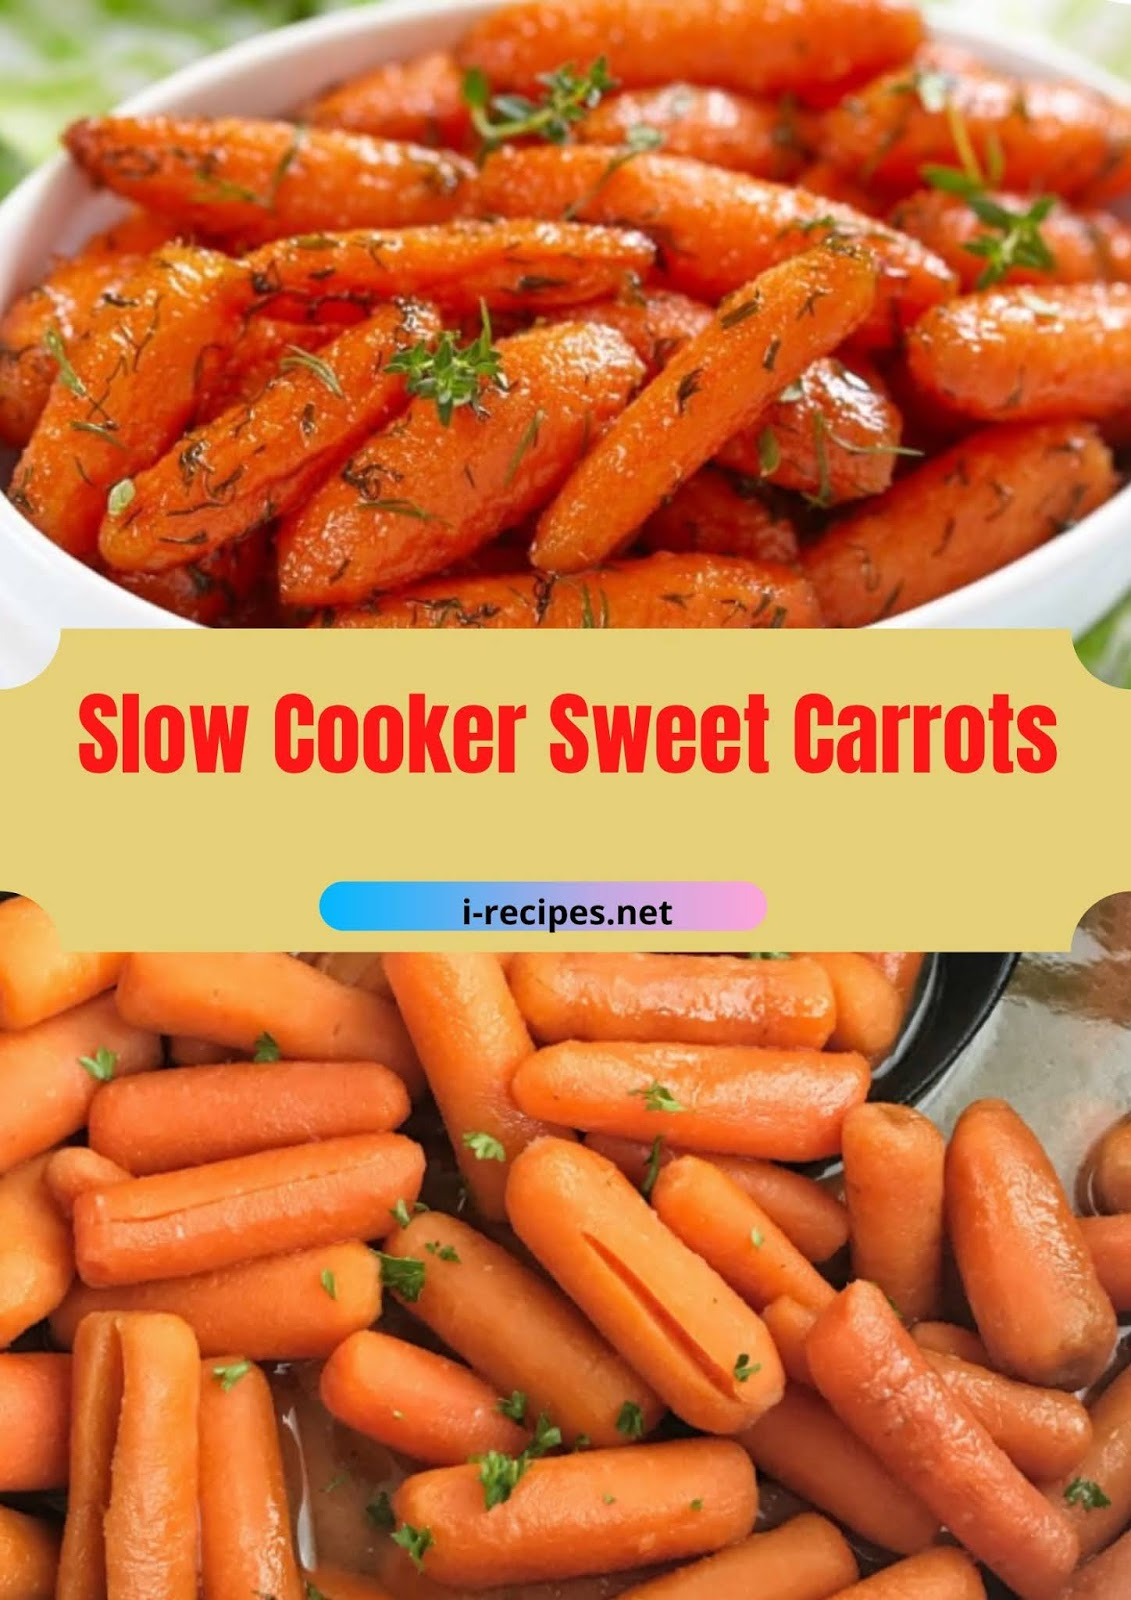 Slow Cooker Sweet Carrots